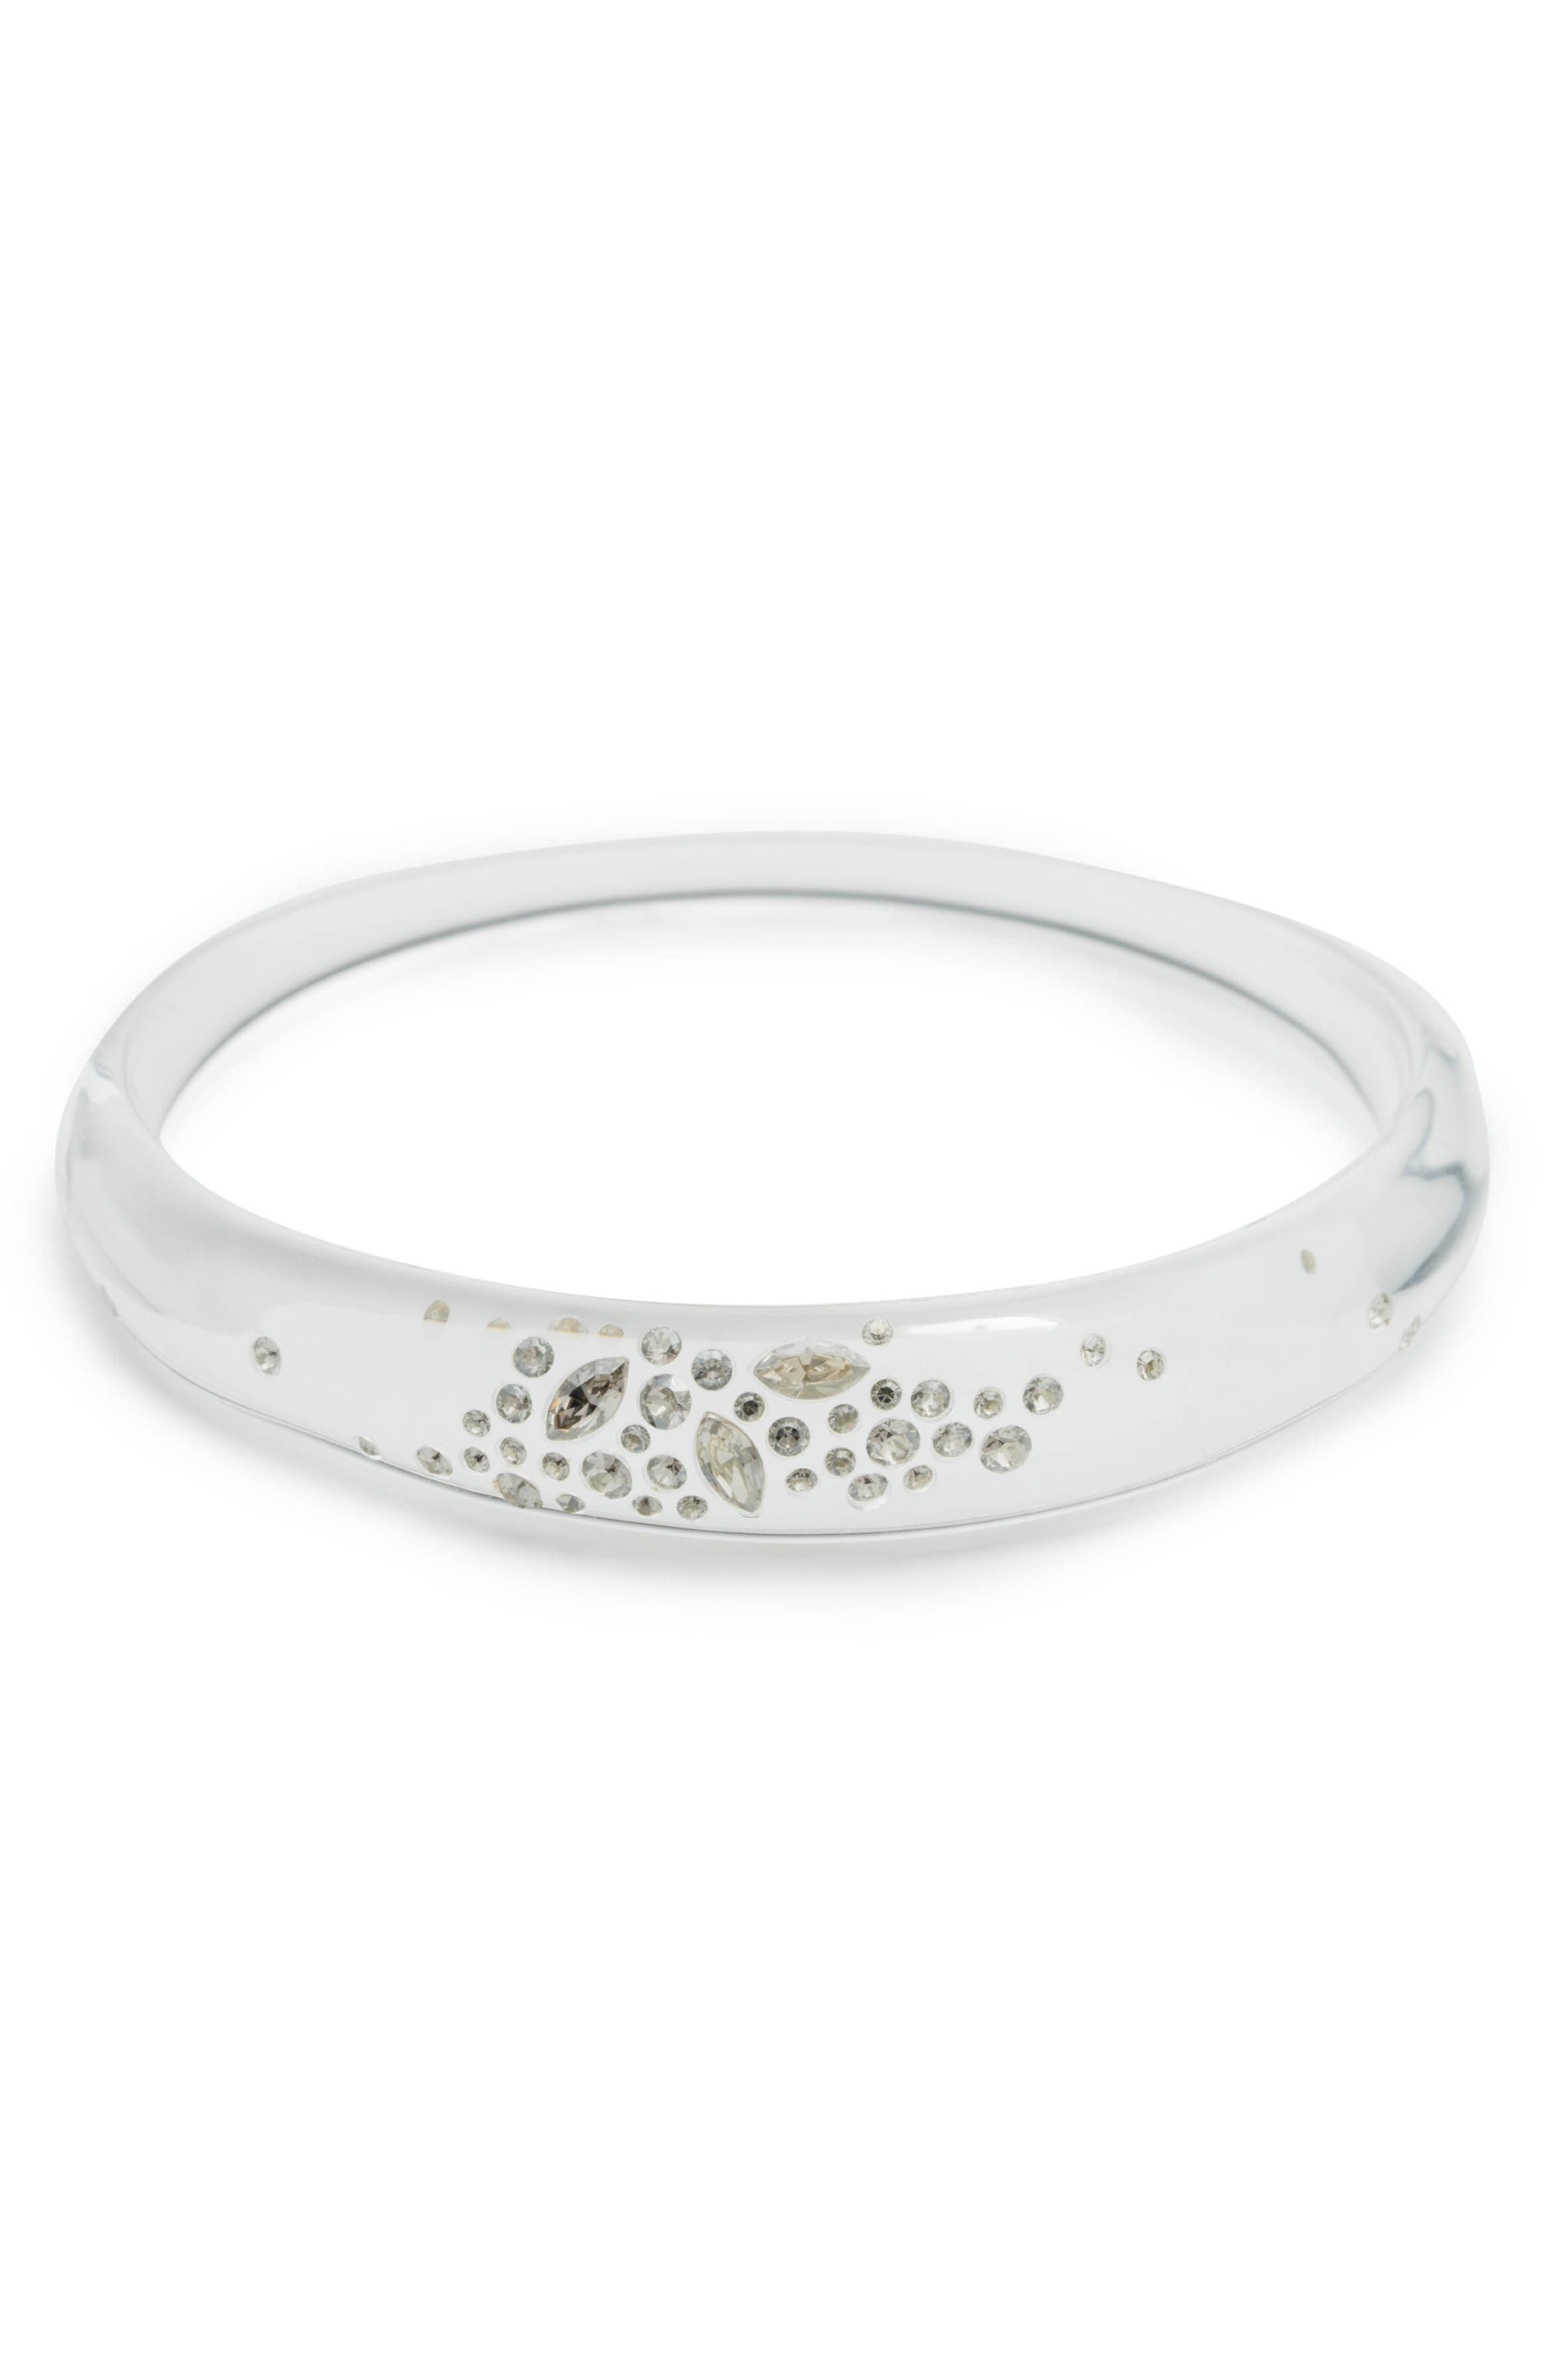 Main Image - Alexis Bittar Lucite® Tapered Bangle